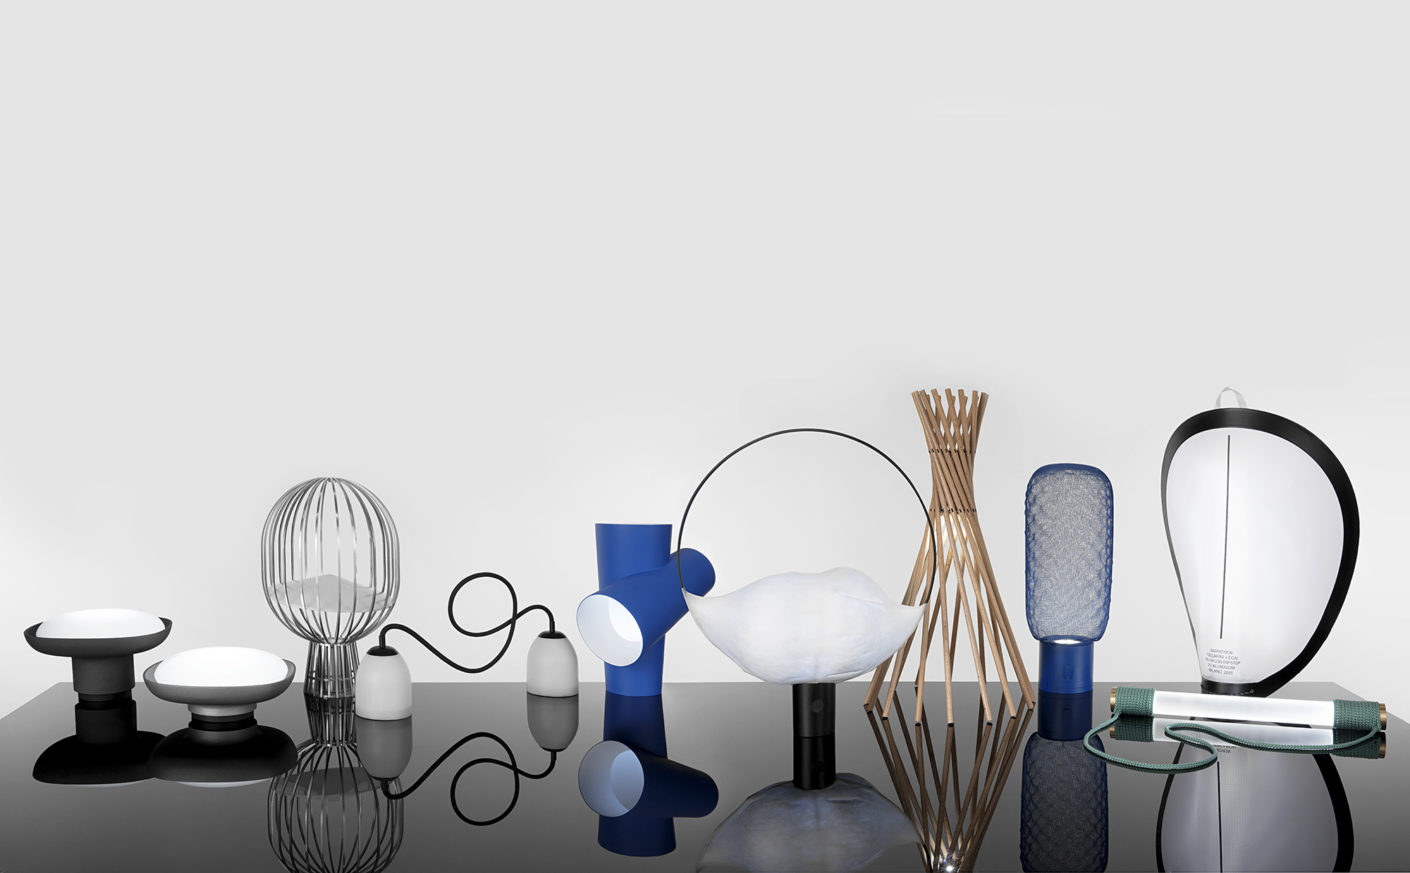 ECAL's cooperation with Foscarini.